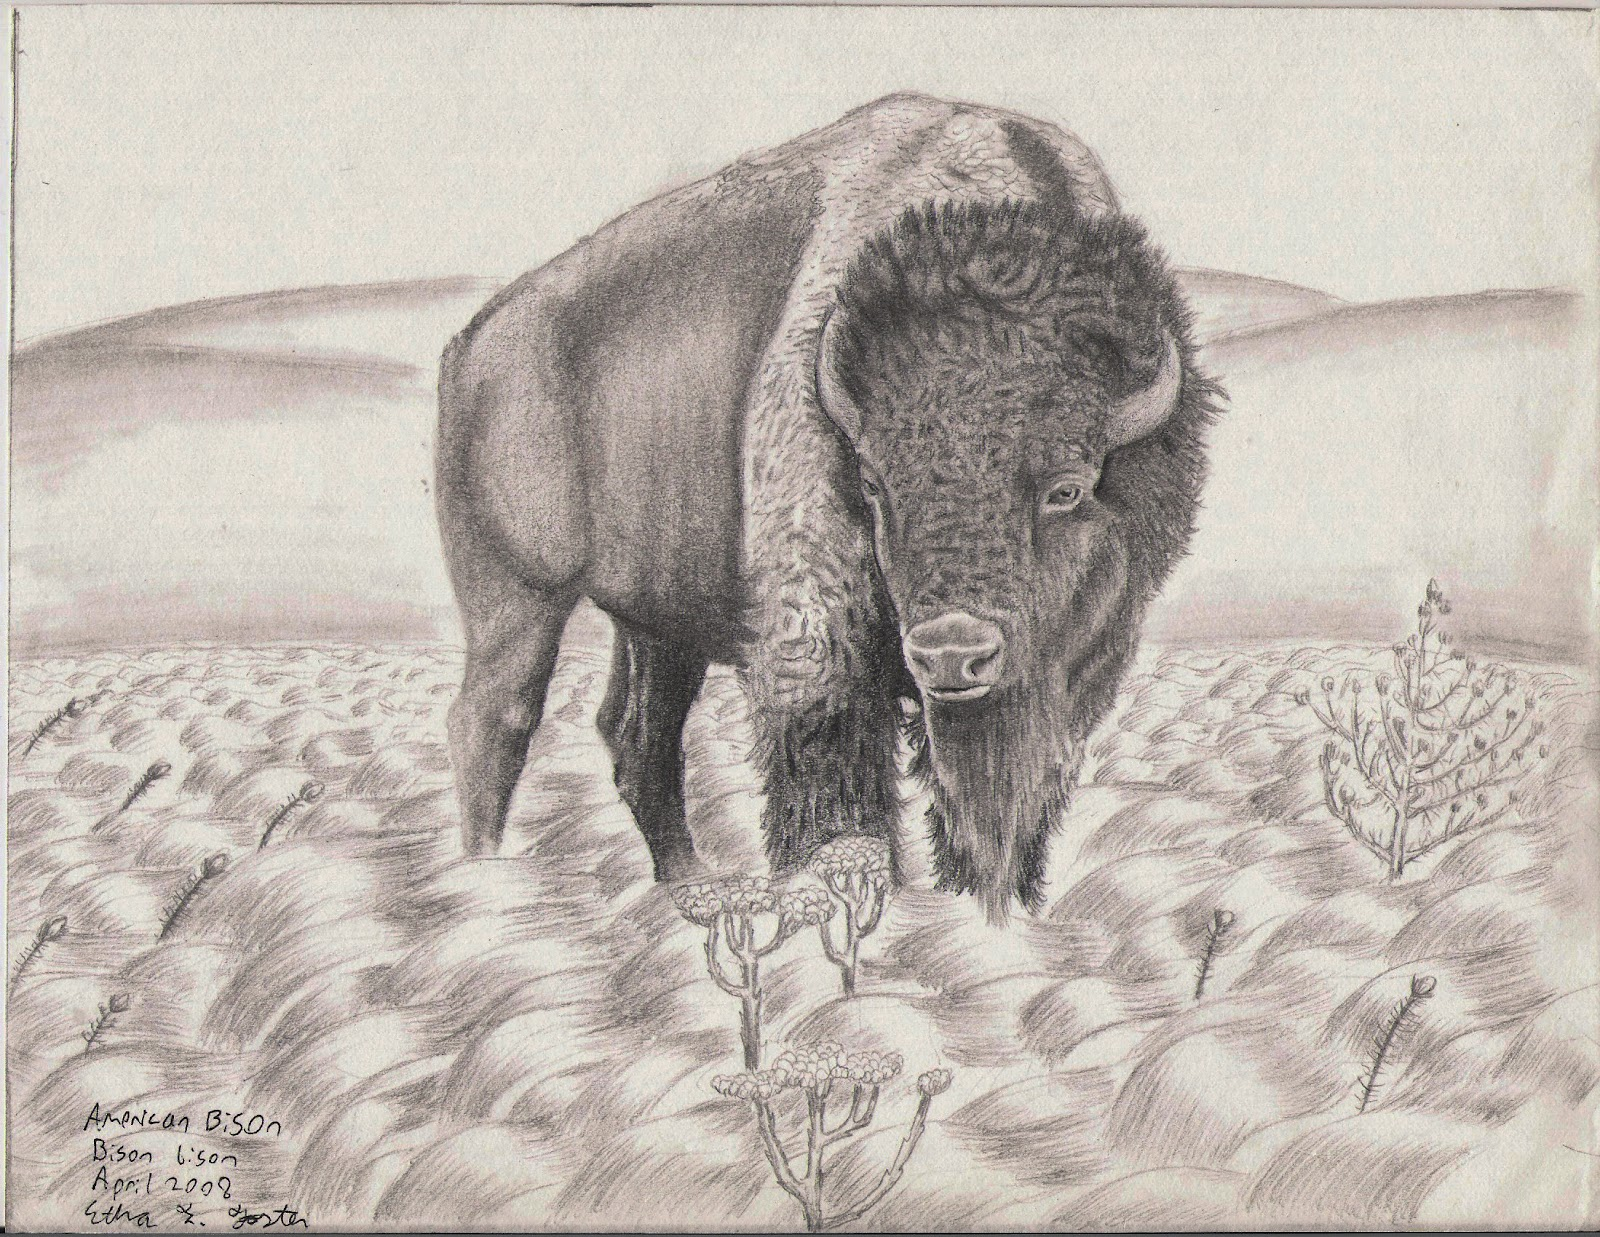 American bison pencil drawing in h hb b3 pencil